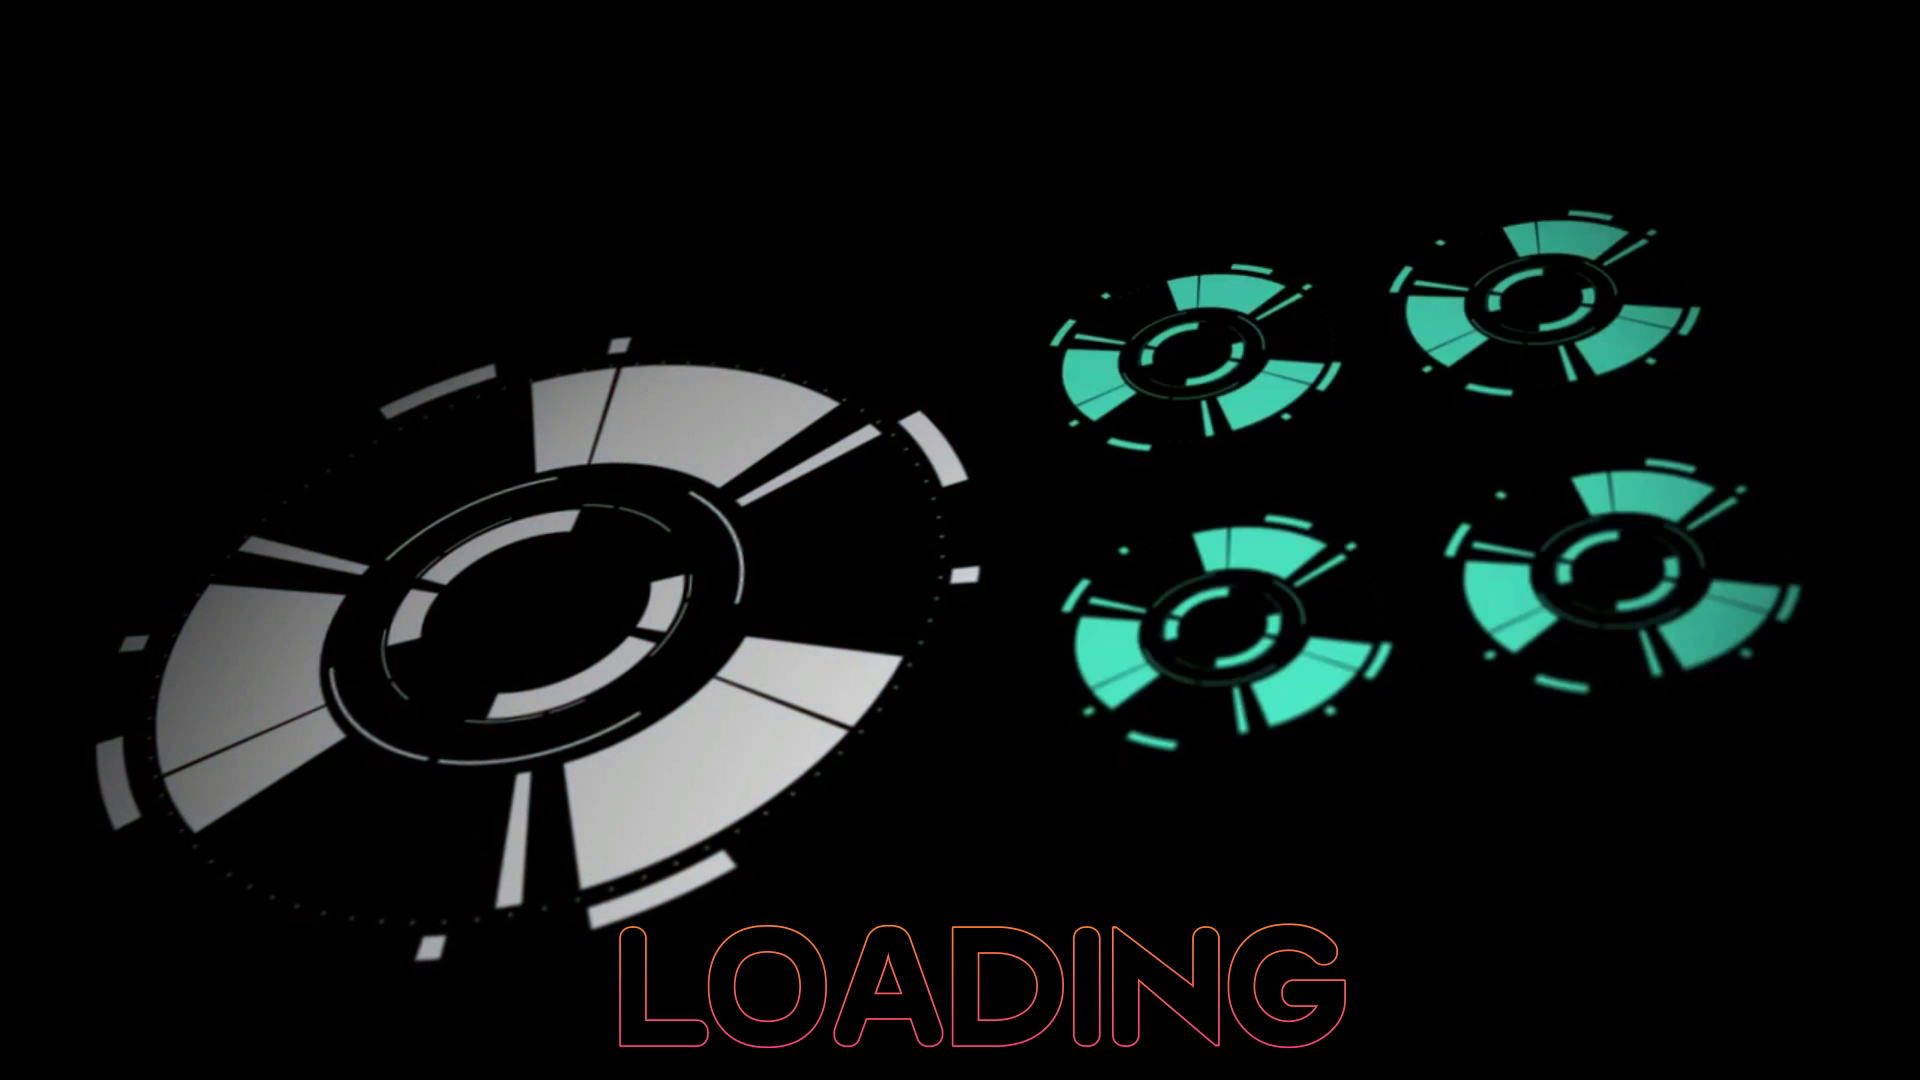 2D Loading Intro Template Wondershare Filmora | Free Download